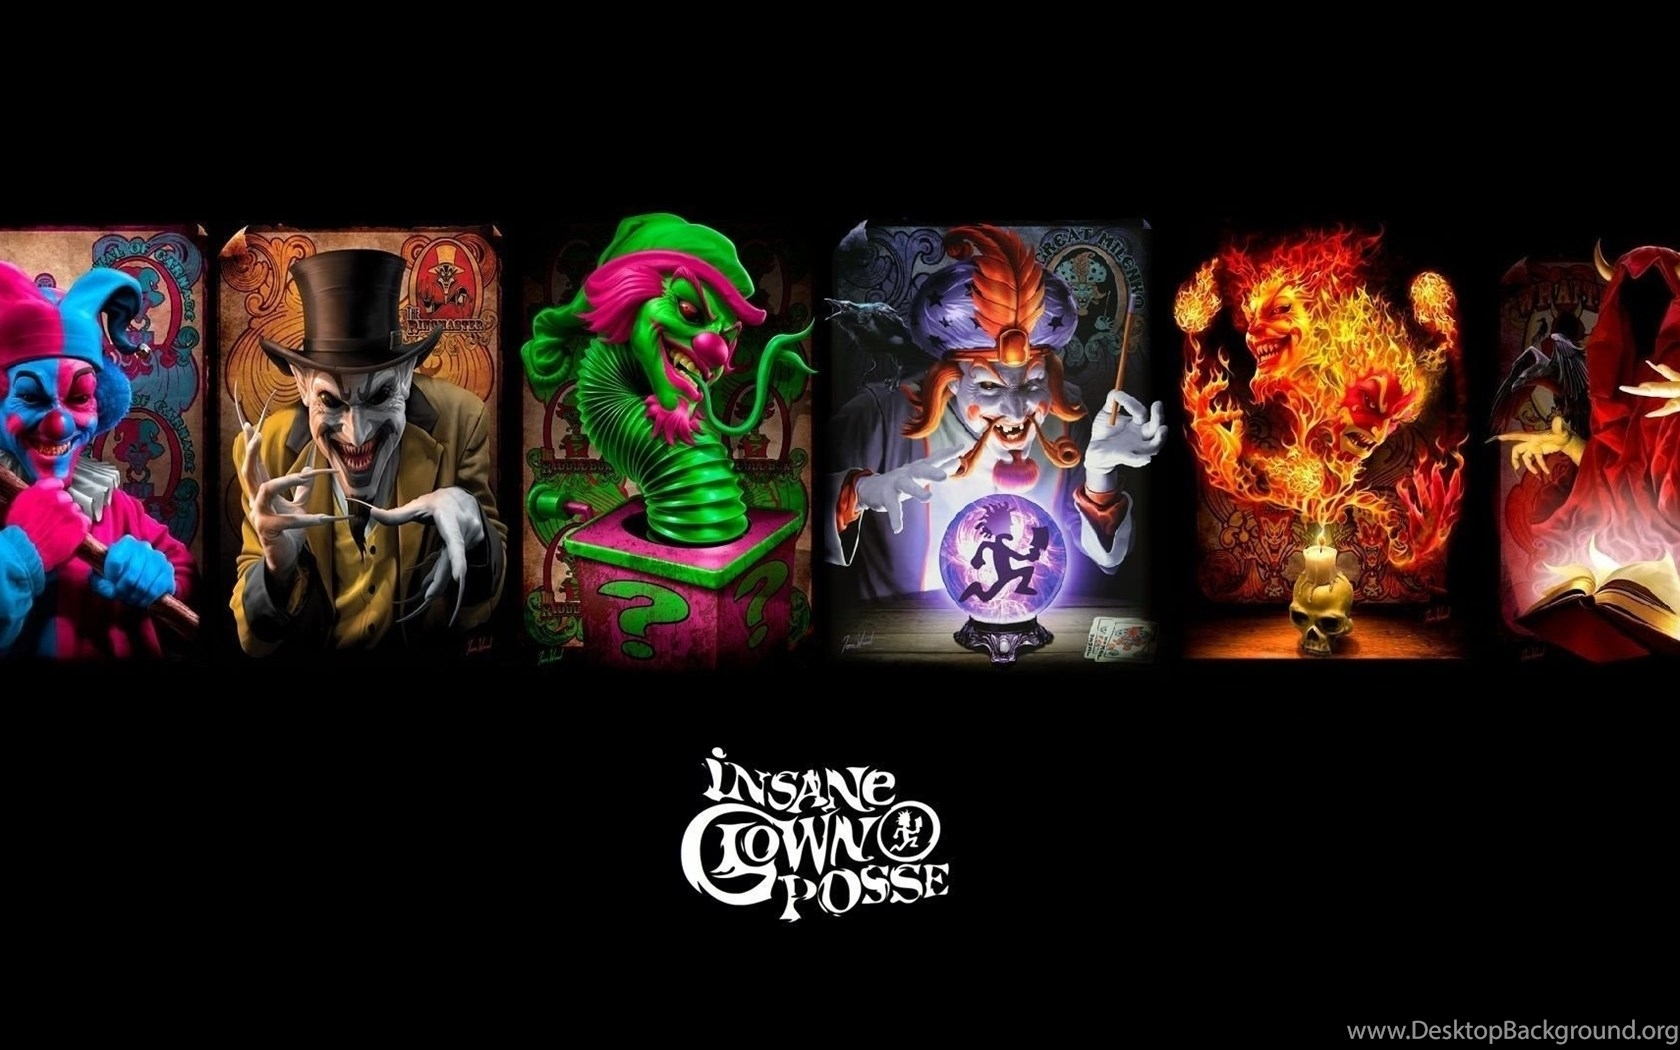 insane clown posse hd wallpapers and backgrounds desktop background